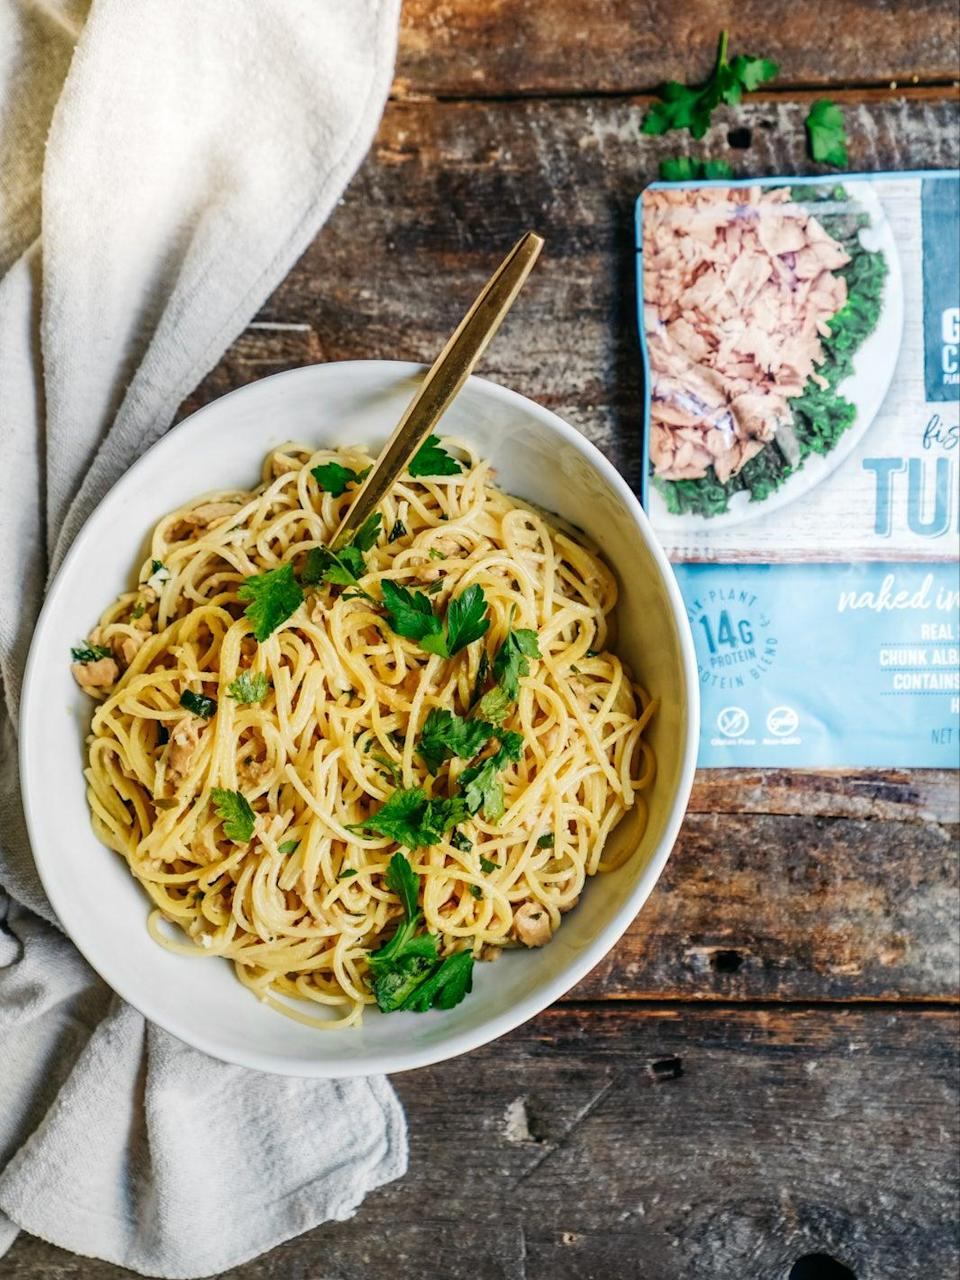 This protein rich pasta only has six ingredients (Good Catch Tuna)